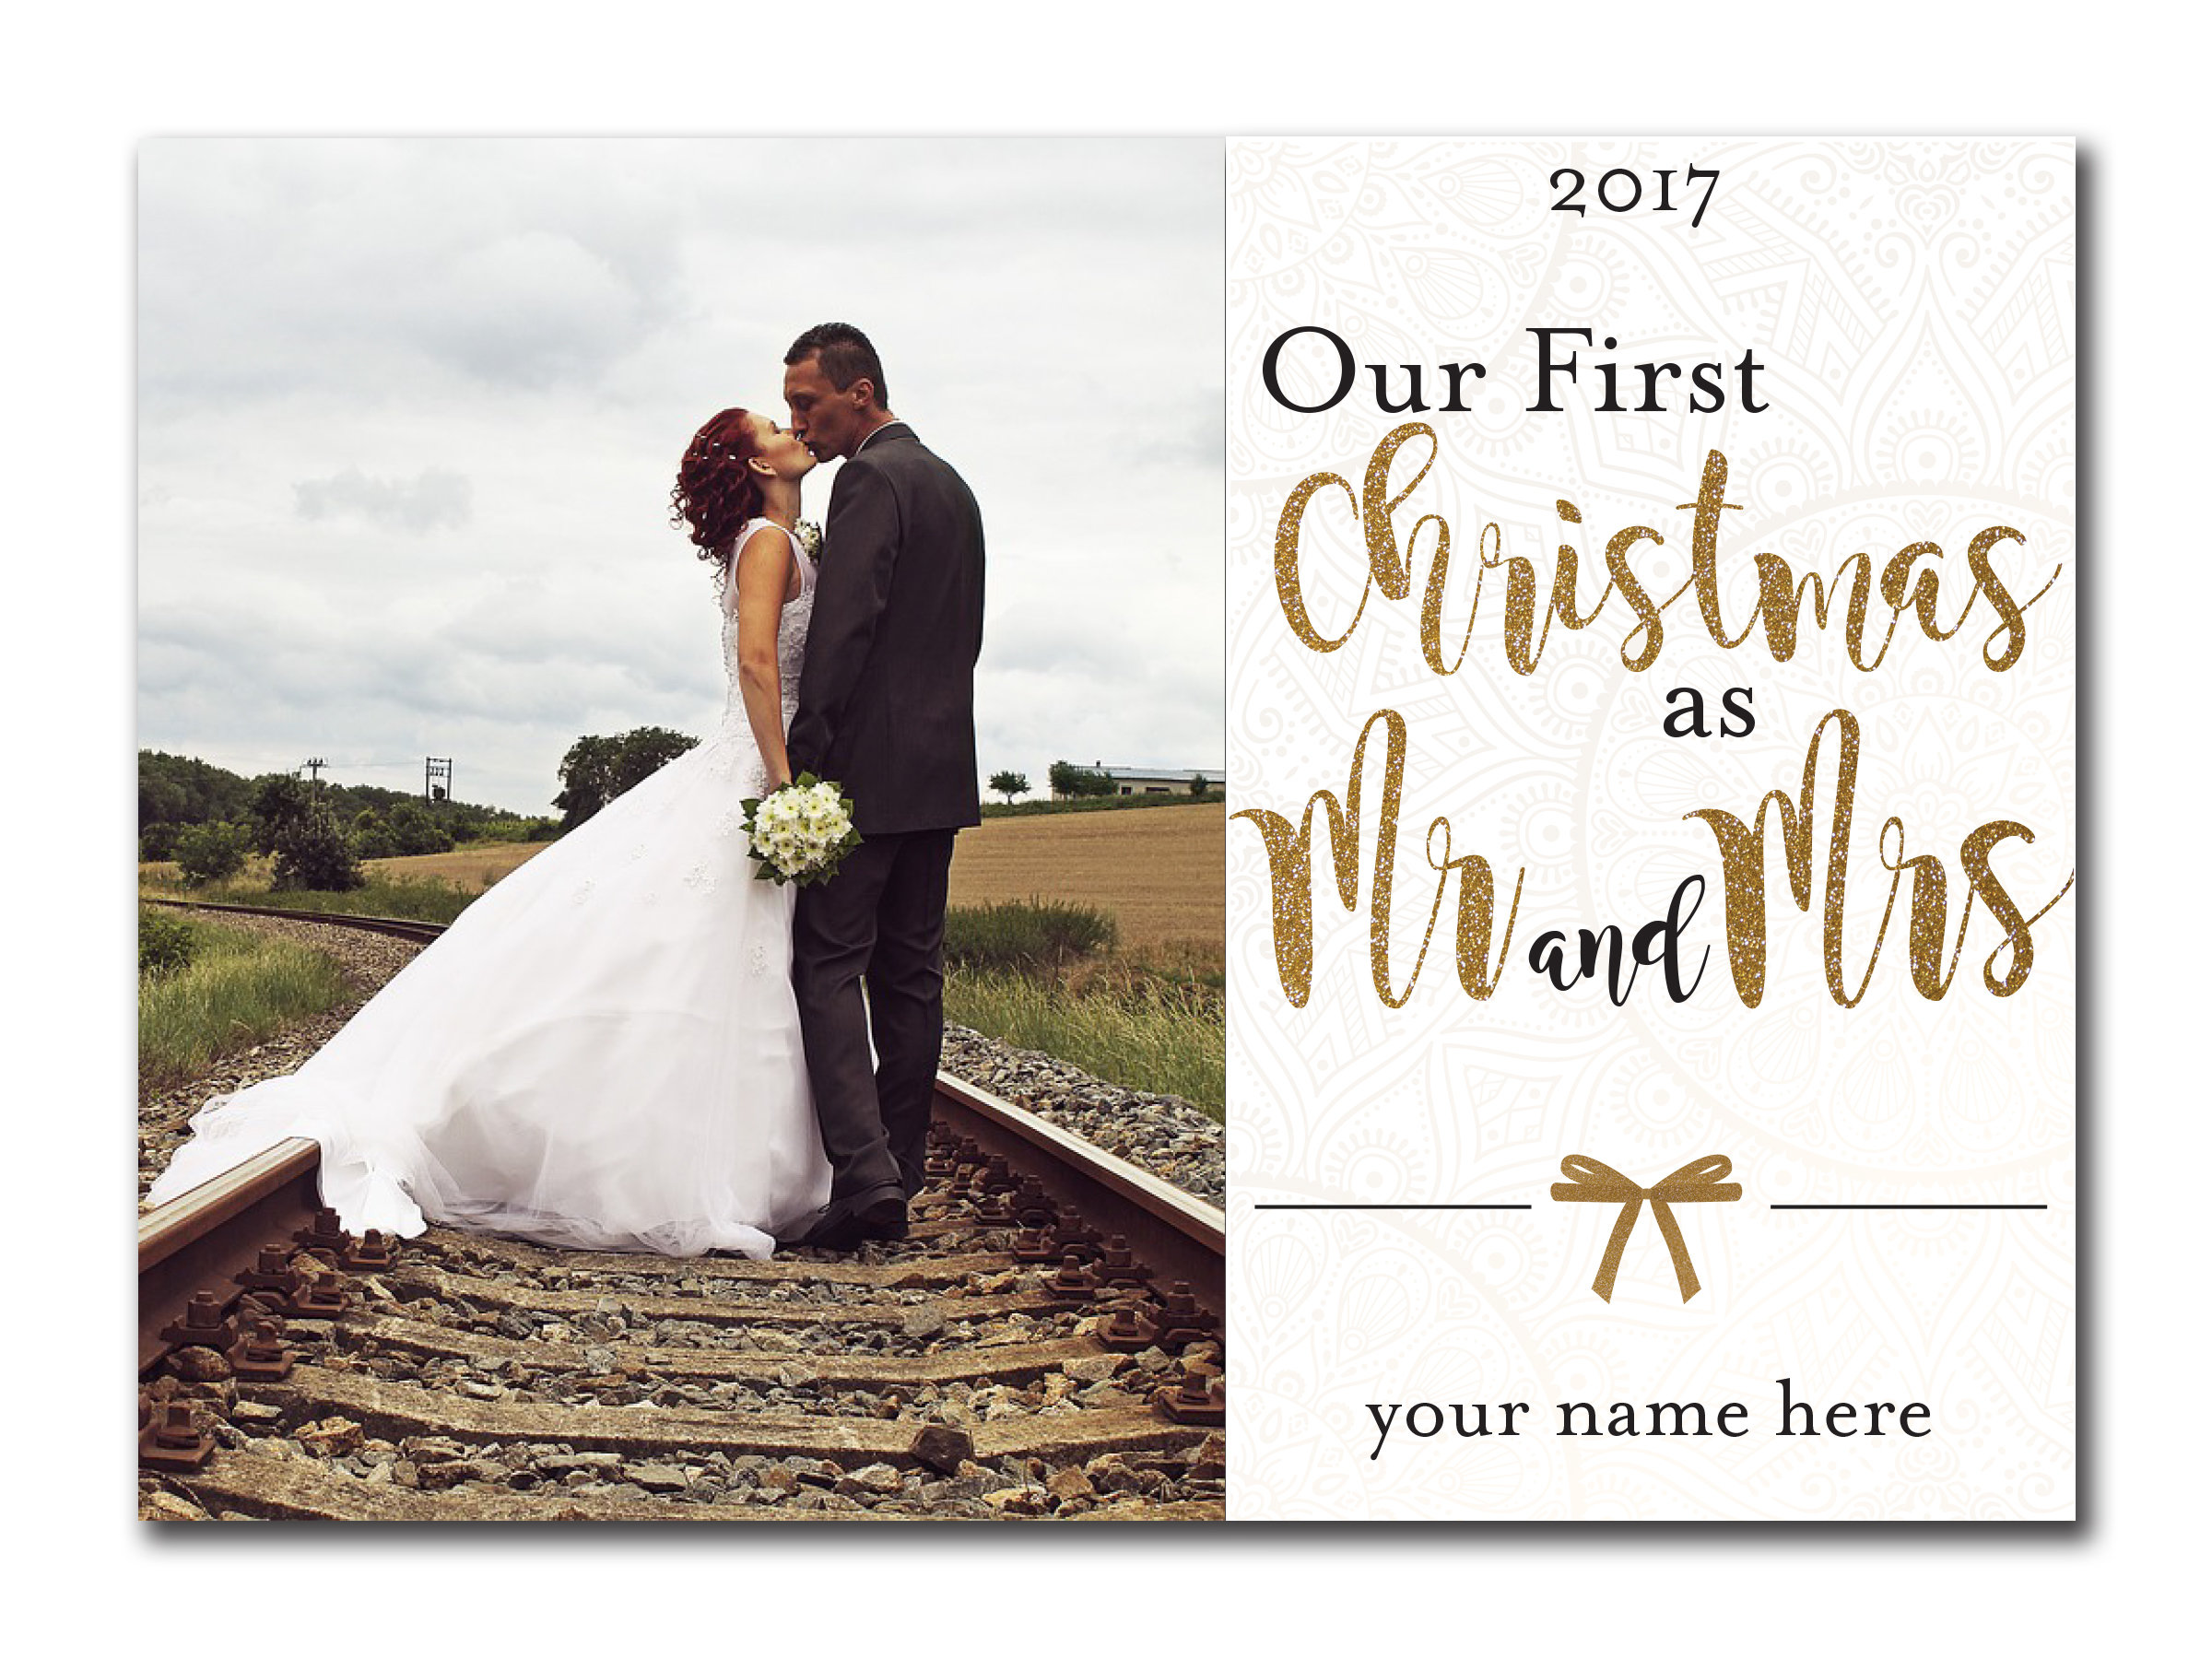 Our First Christmas as Mr. and Mrs. 5x7 00028